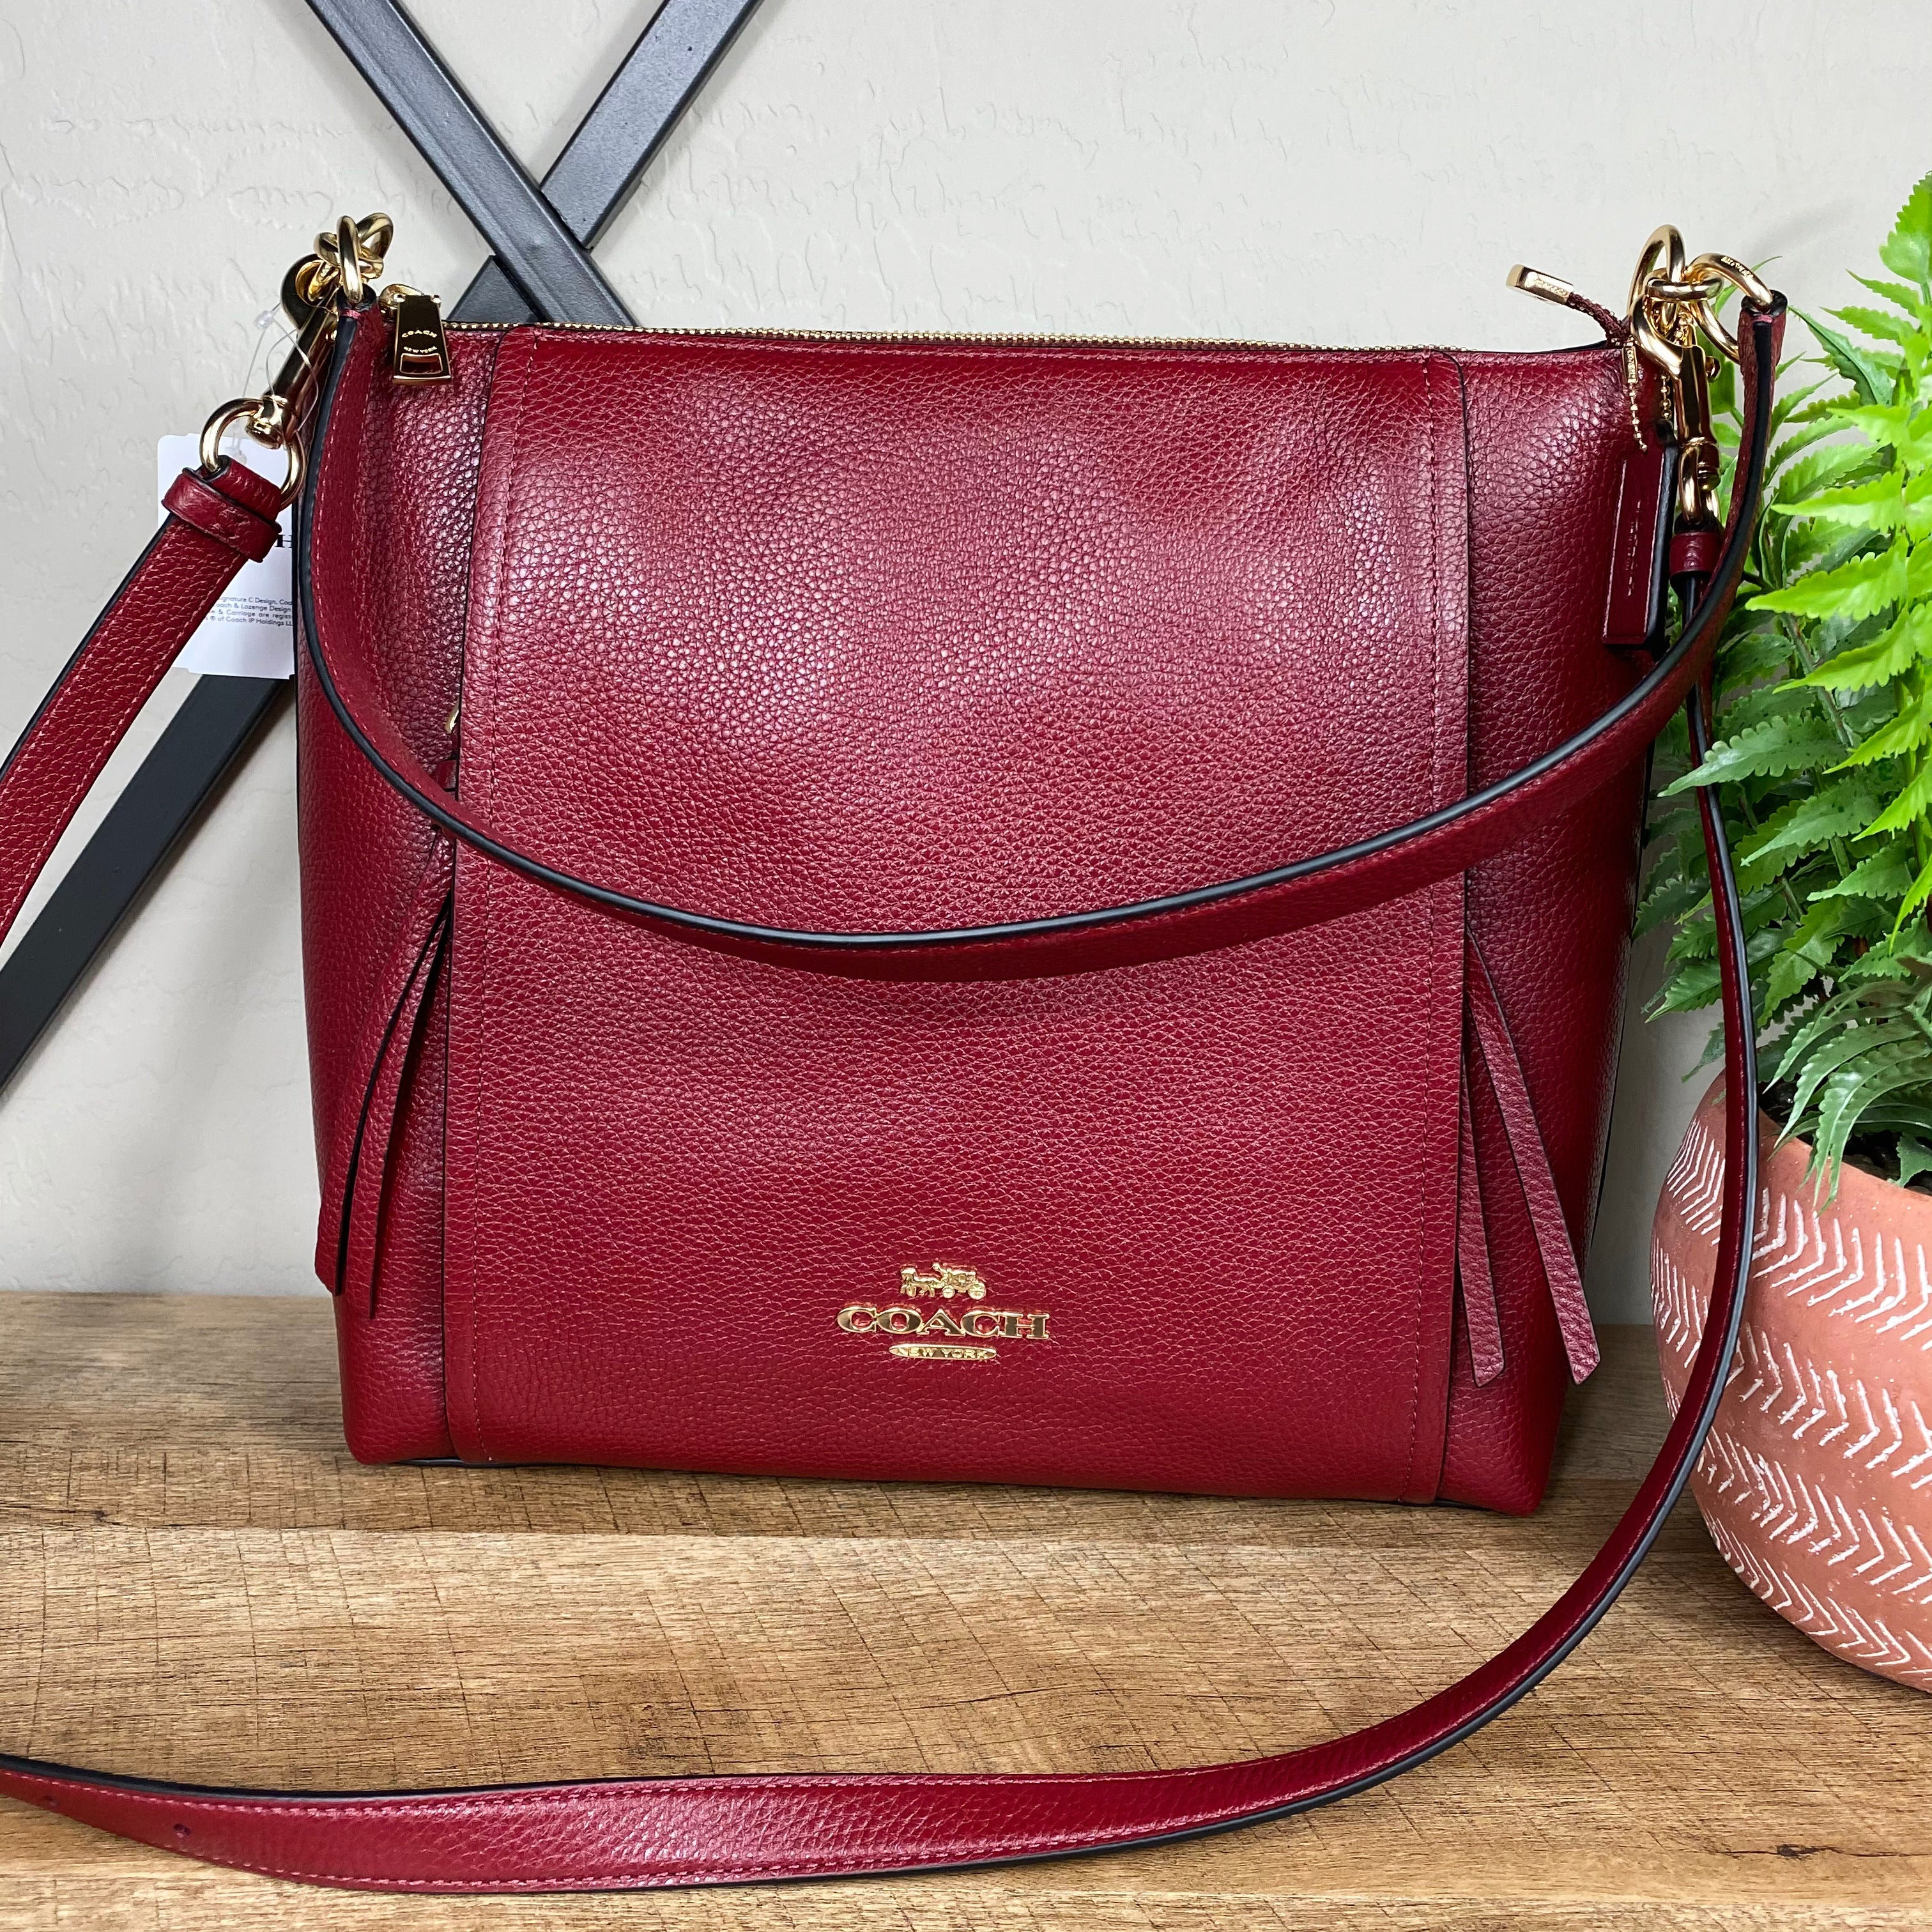 Coach Marlon Pebbled Leather Hobo Crossbody